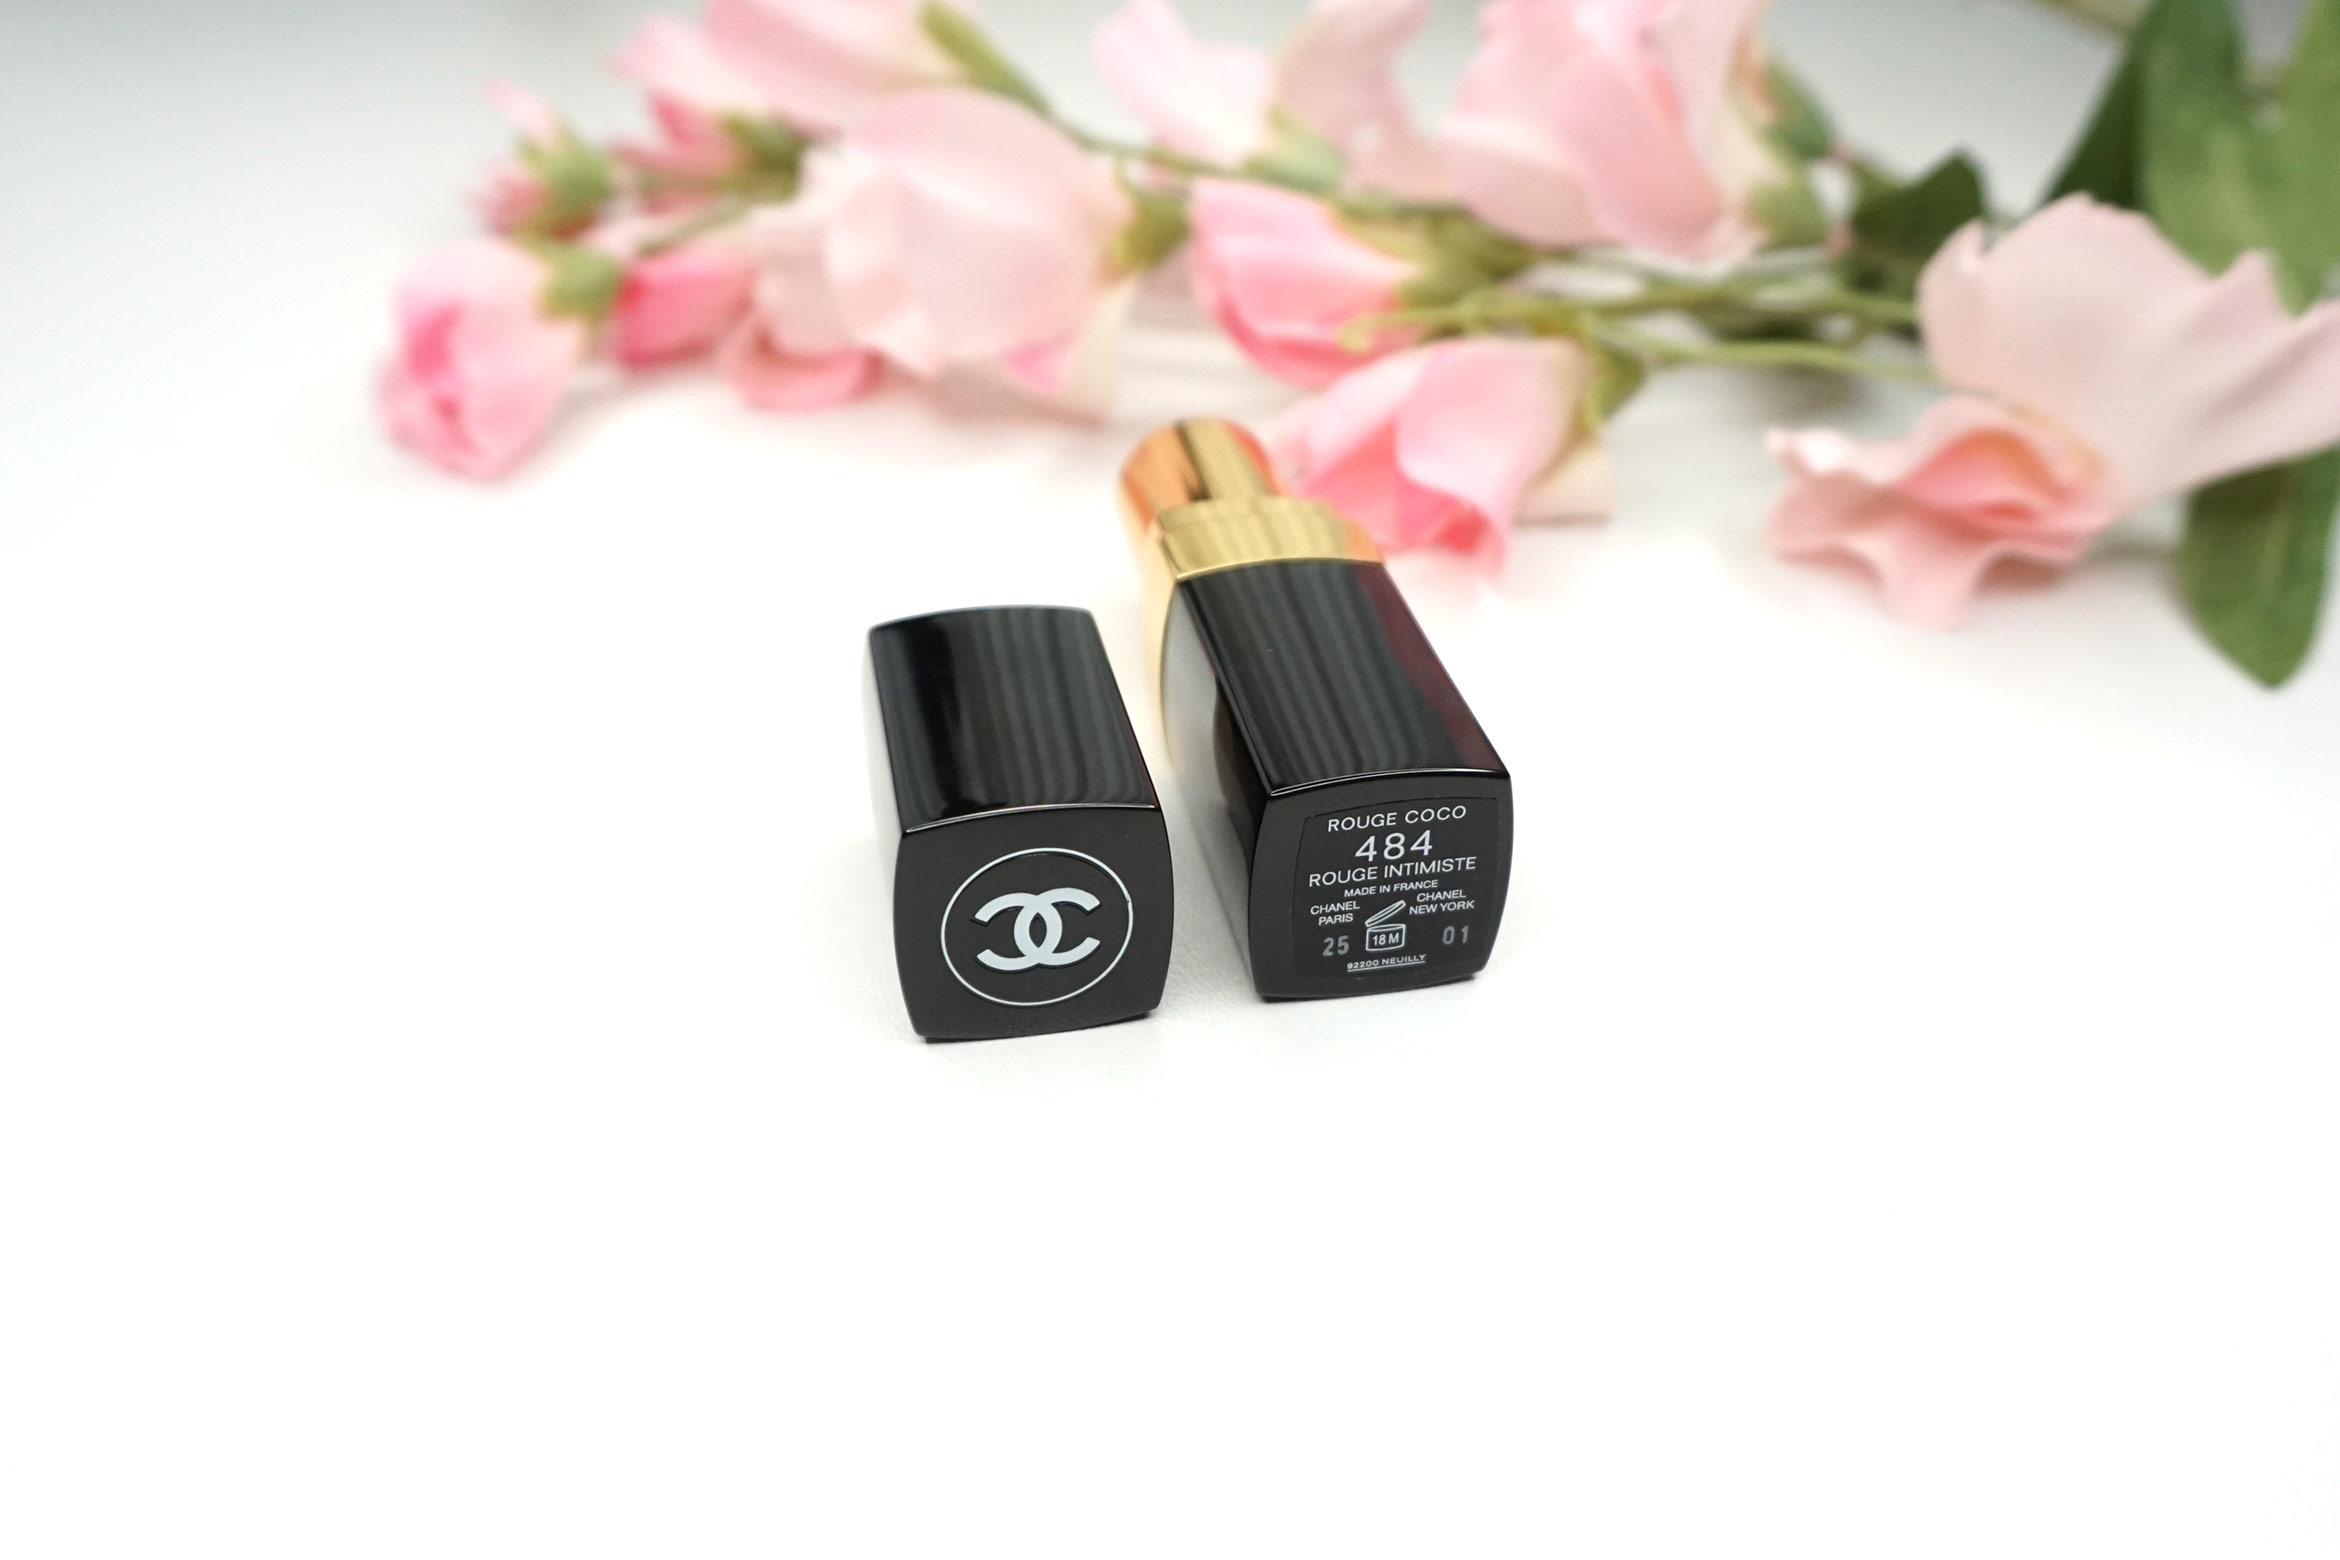 Chanel-rouge-coco-rouge-intimiste-484-review-8